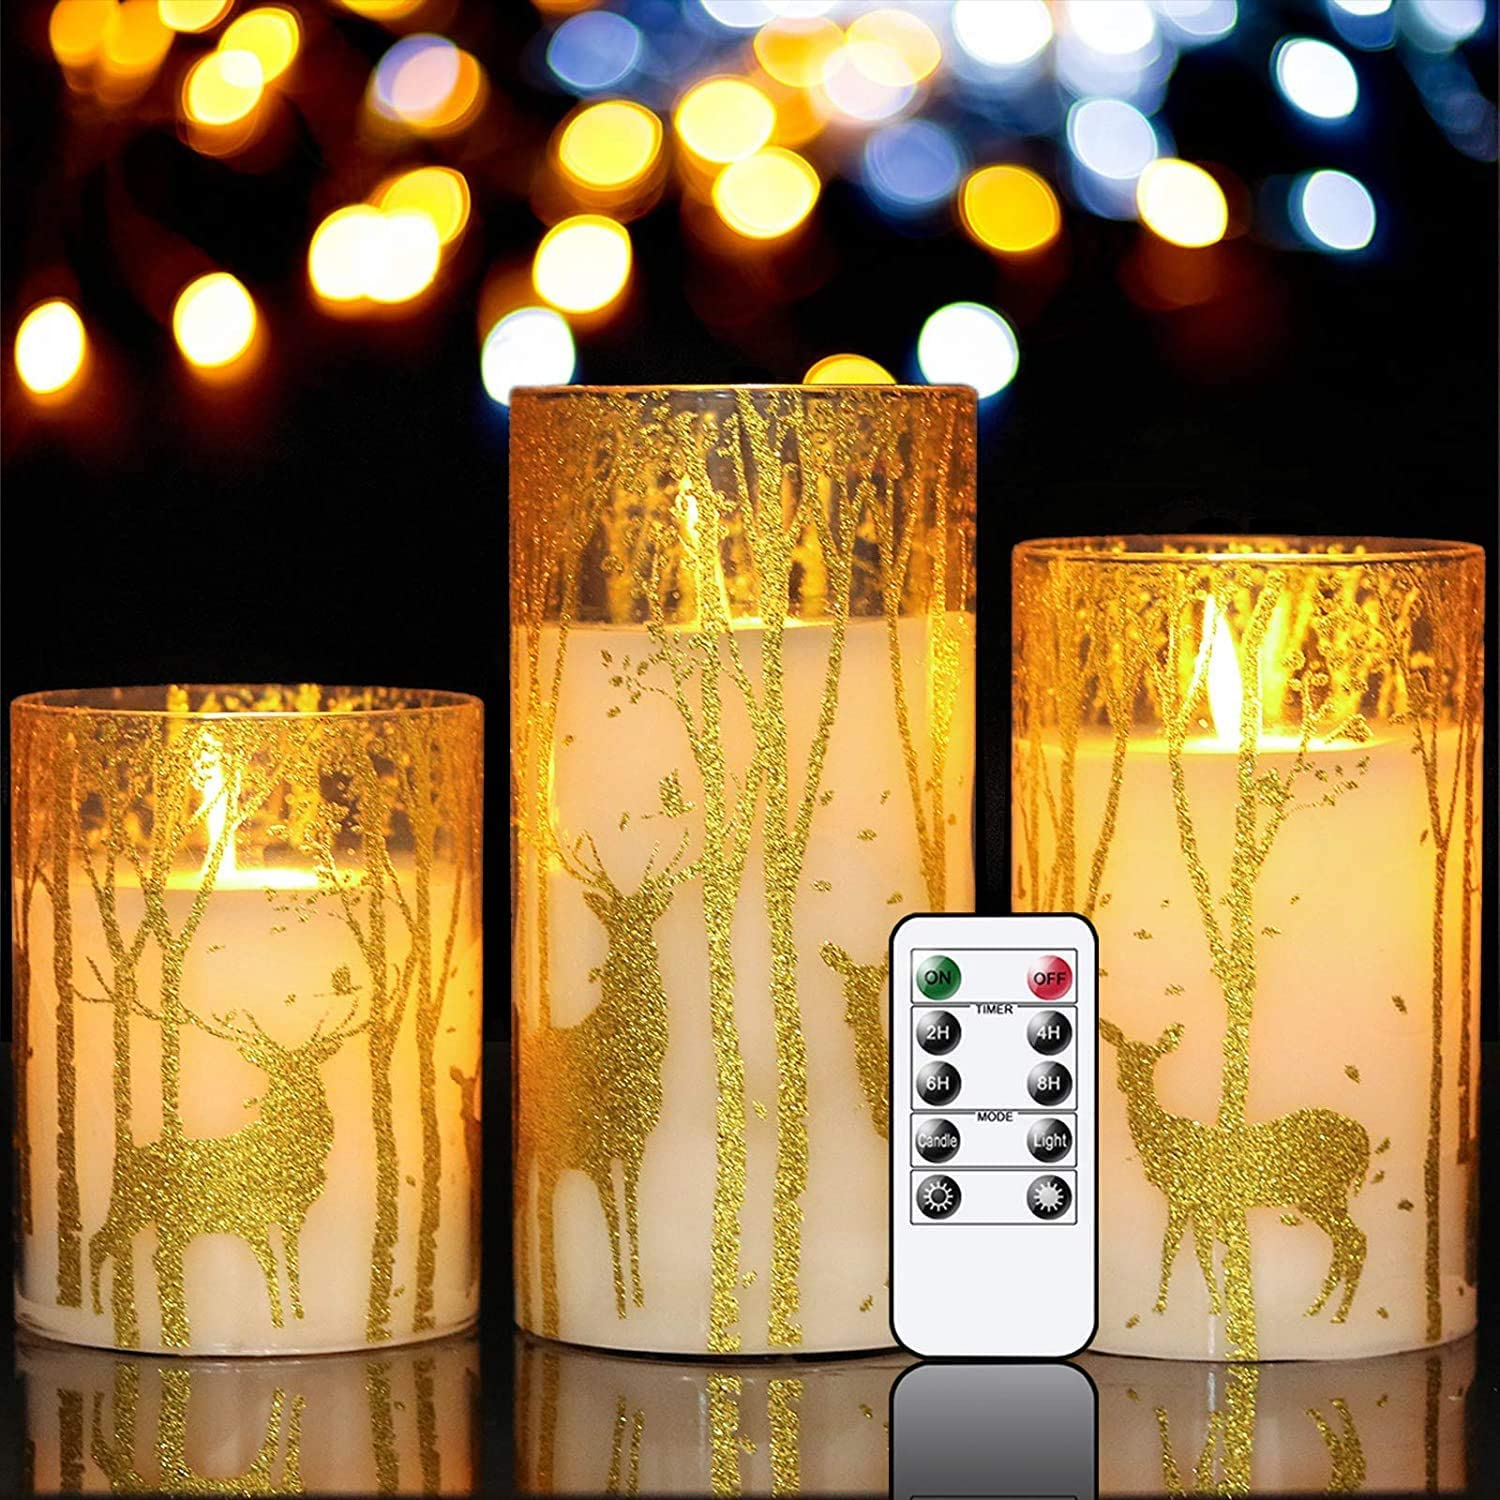 GenSwin Glass Flameless Candles Flickering with Deer Decor and Remote Timers, Battery Operated Moving Wick Led Light, Set of 3 Real Wax Pillar Candles for Christmas Home Decoration